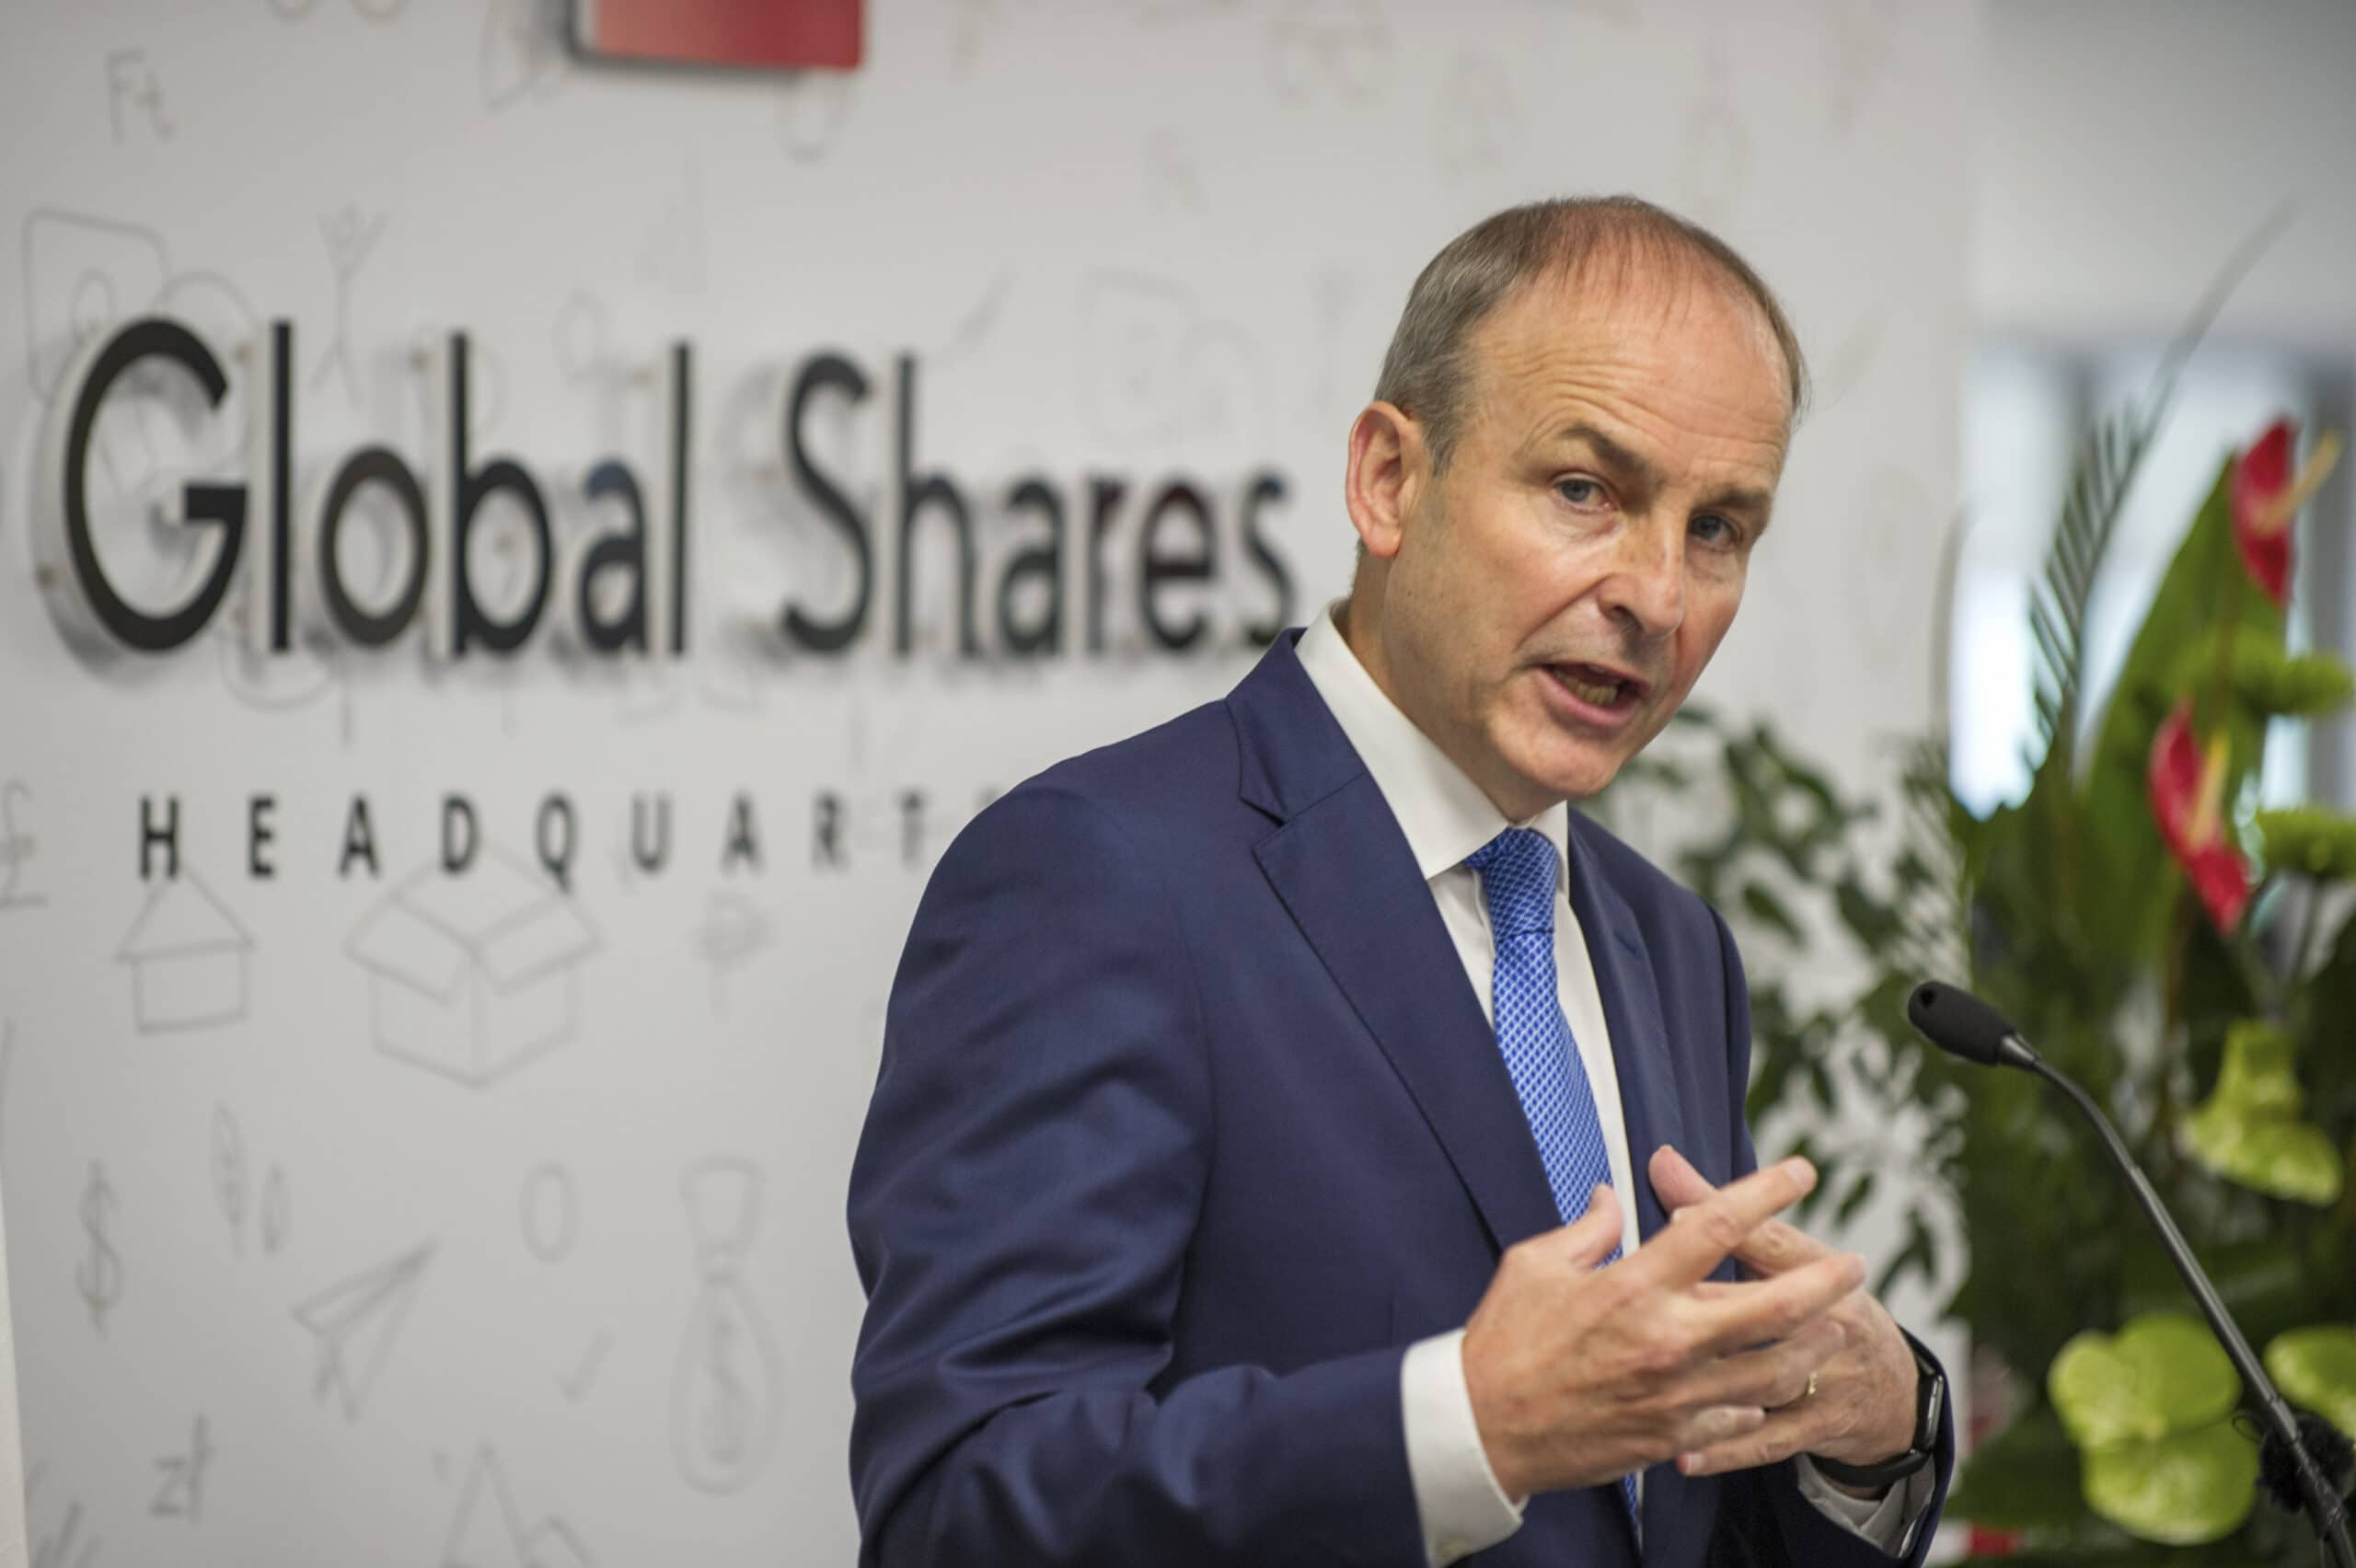 Global Shares announces 150 new jobs – with hundreds more to follow